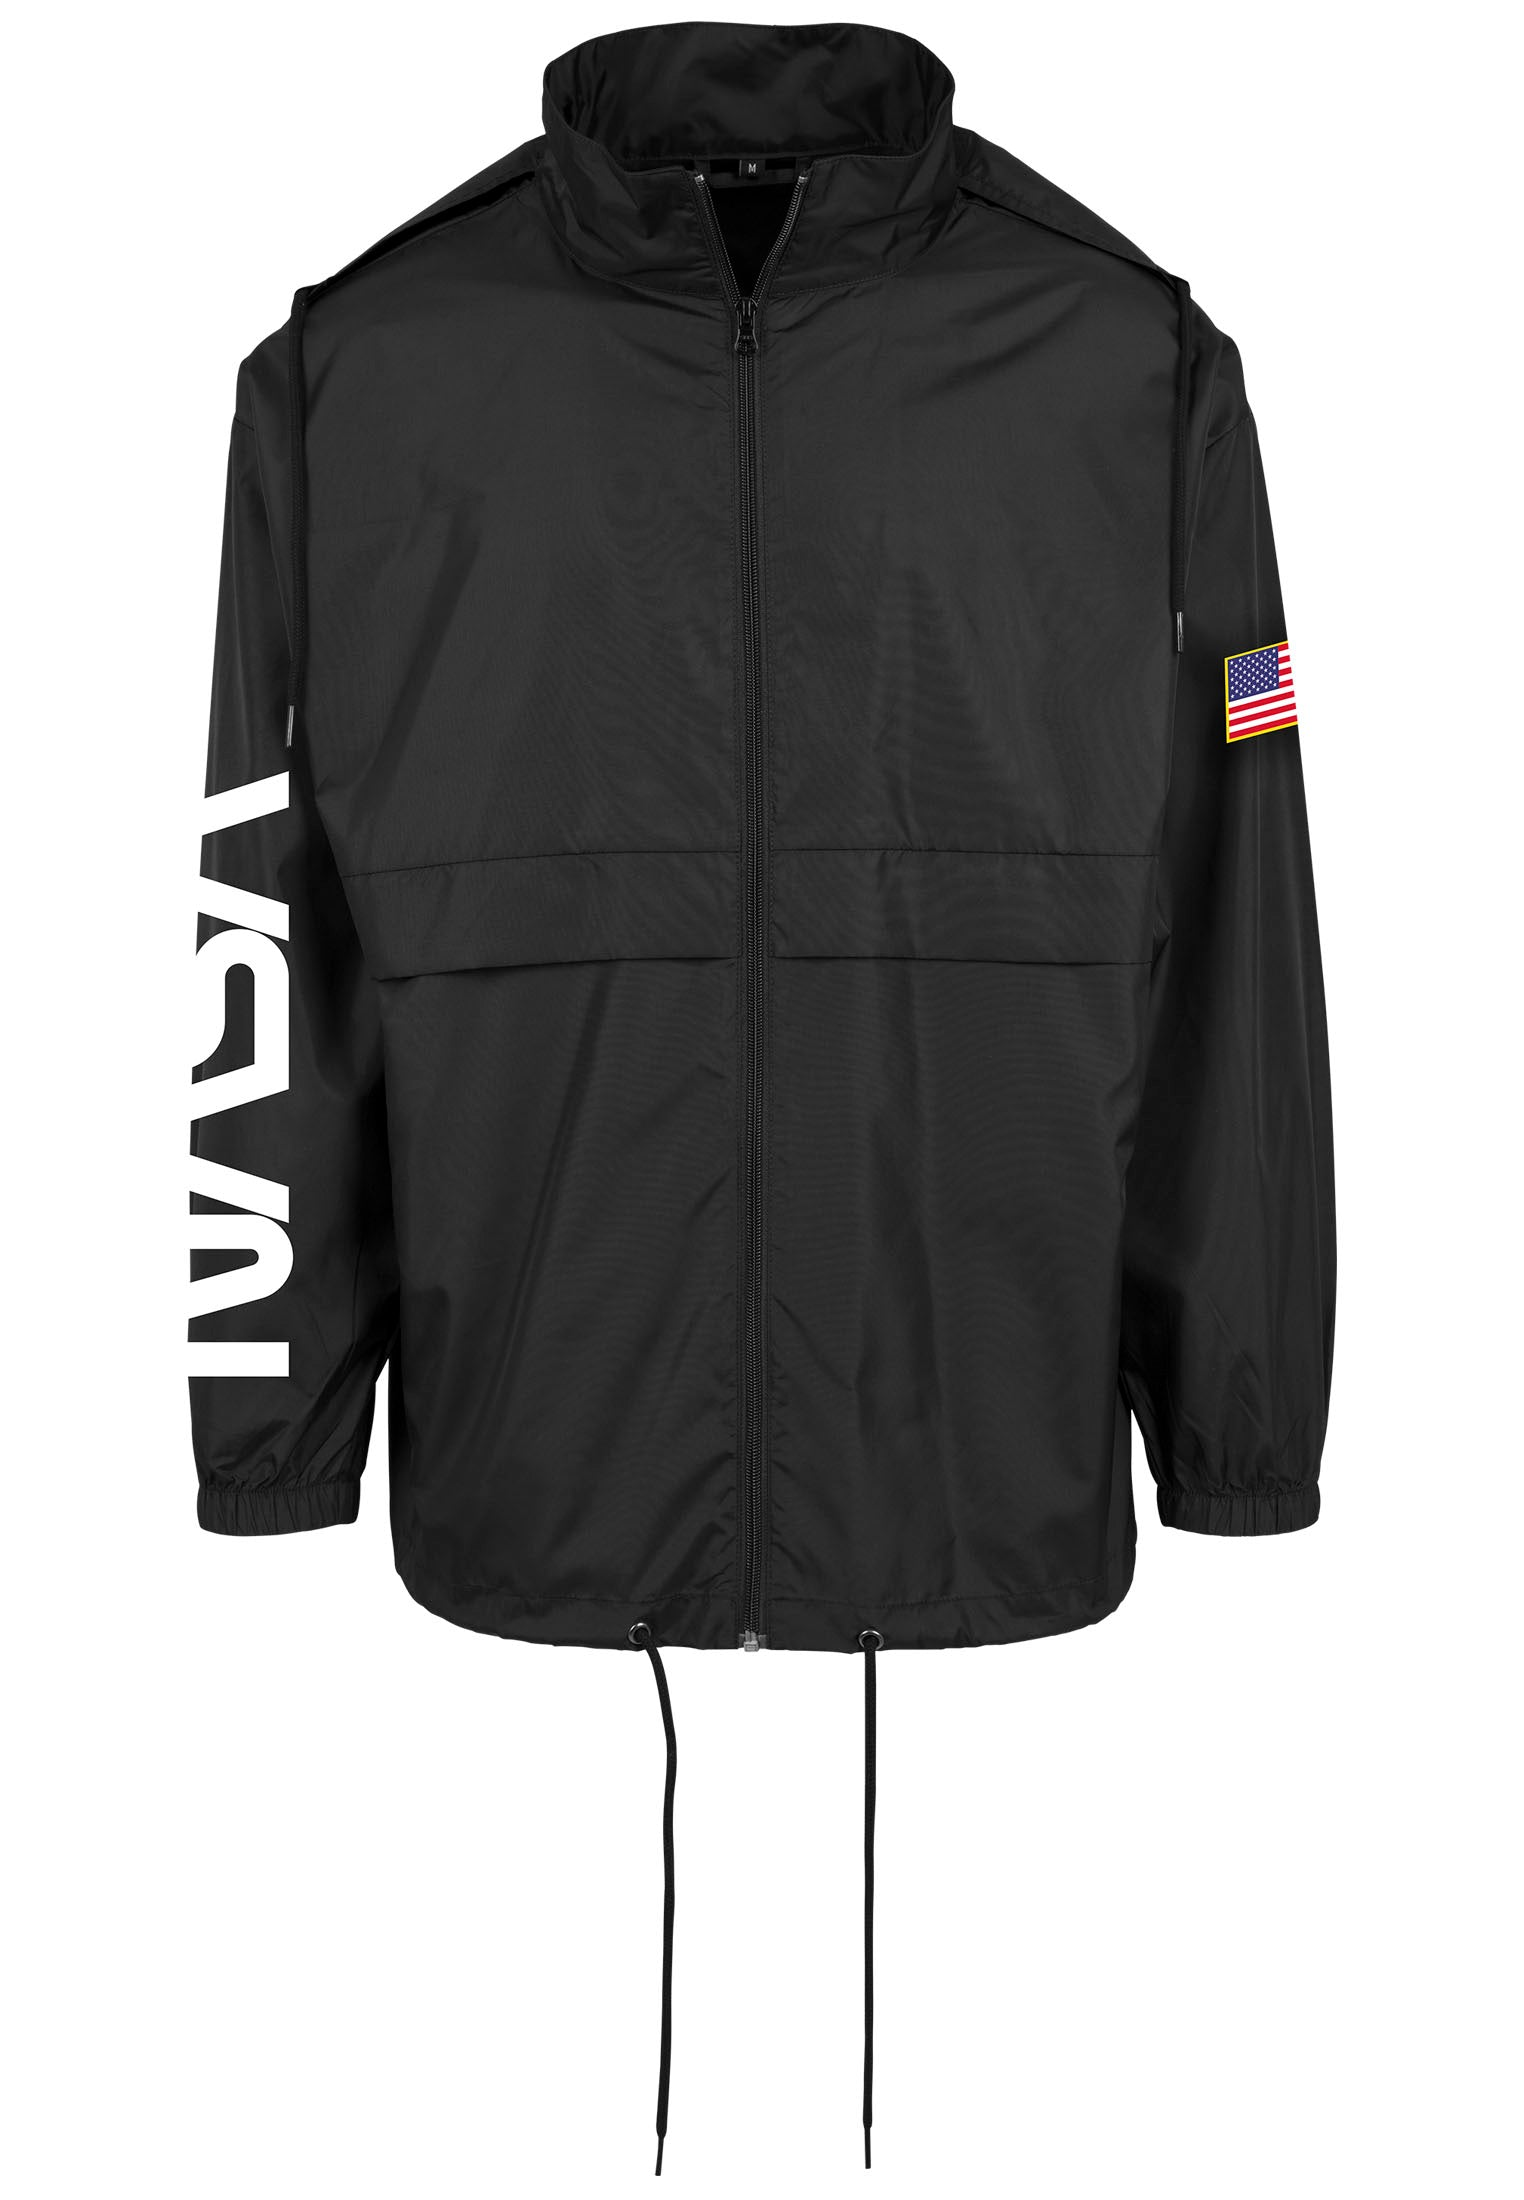 NASA Worm Logo Nylon Windbreaker